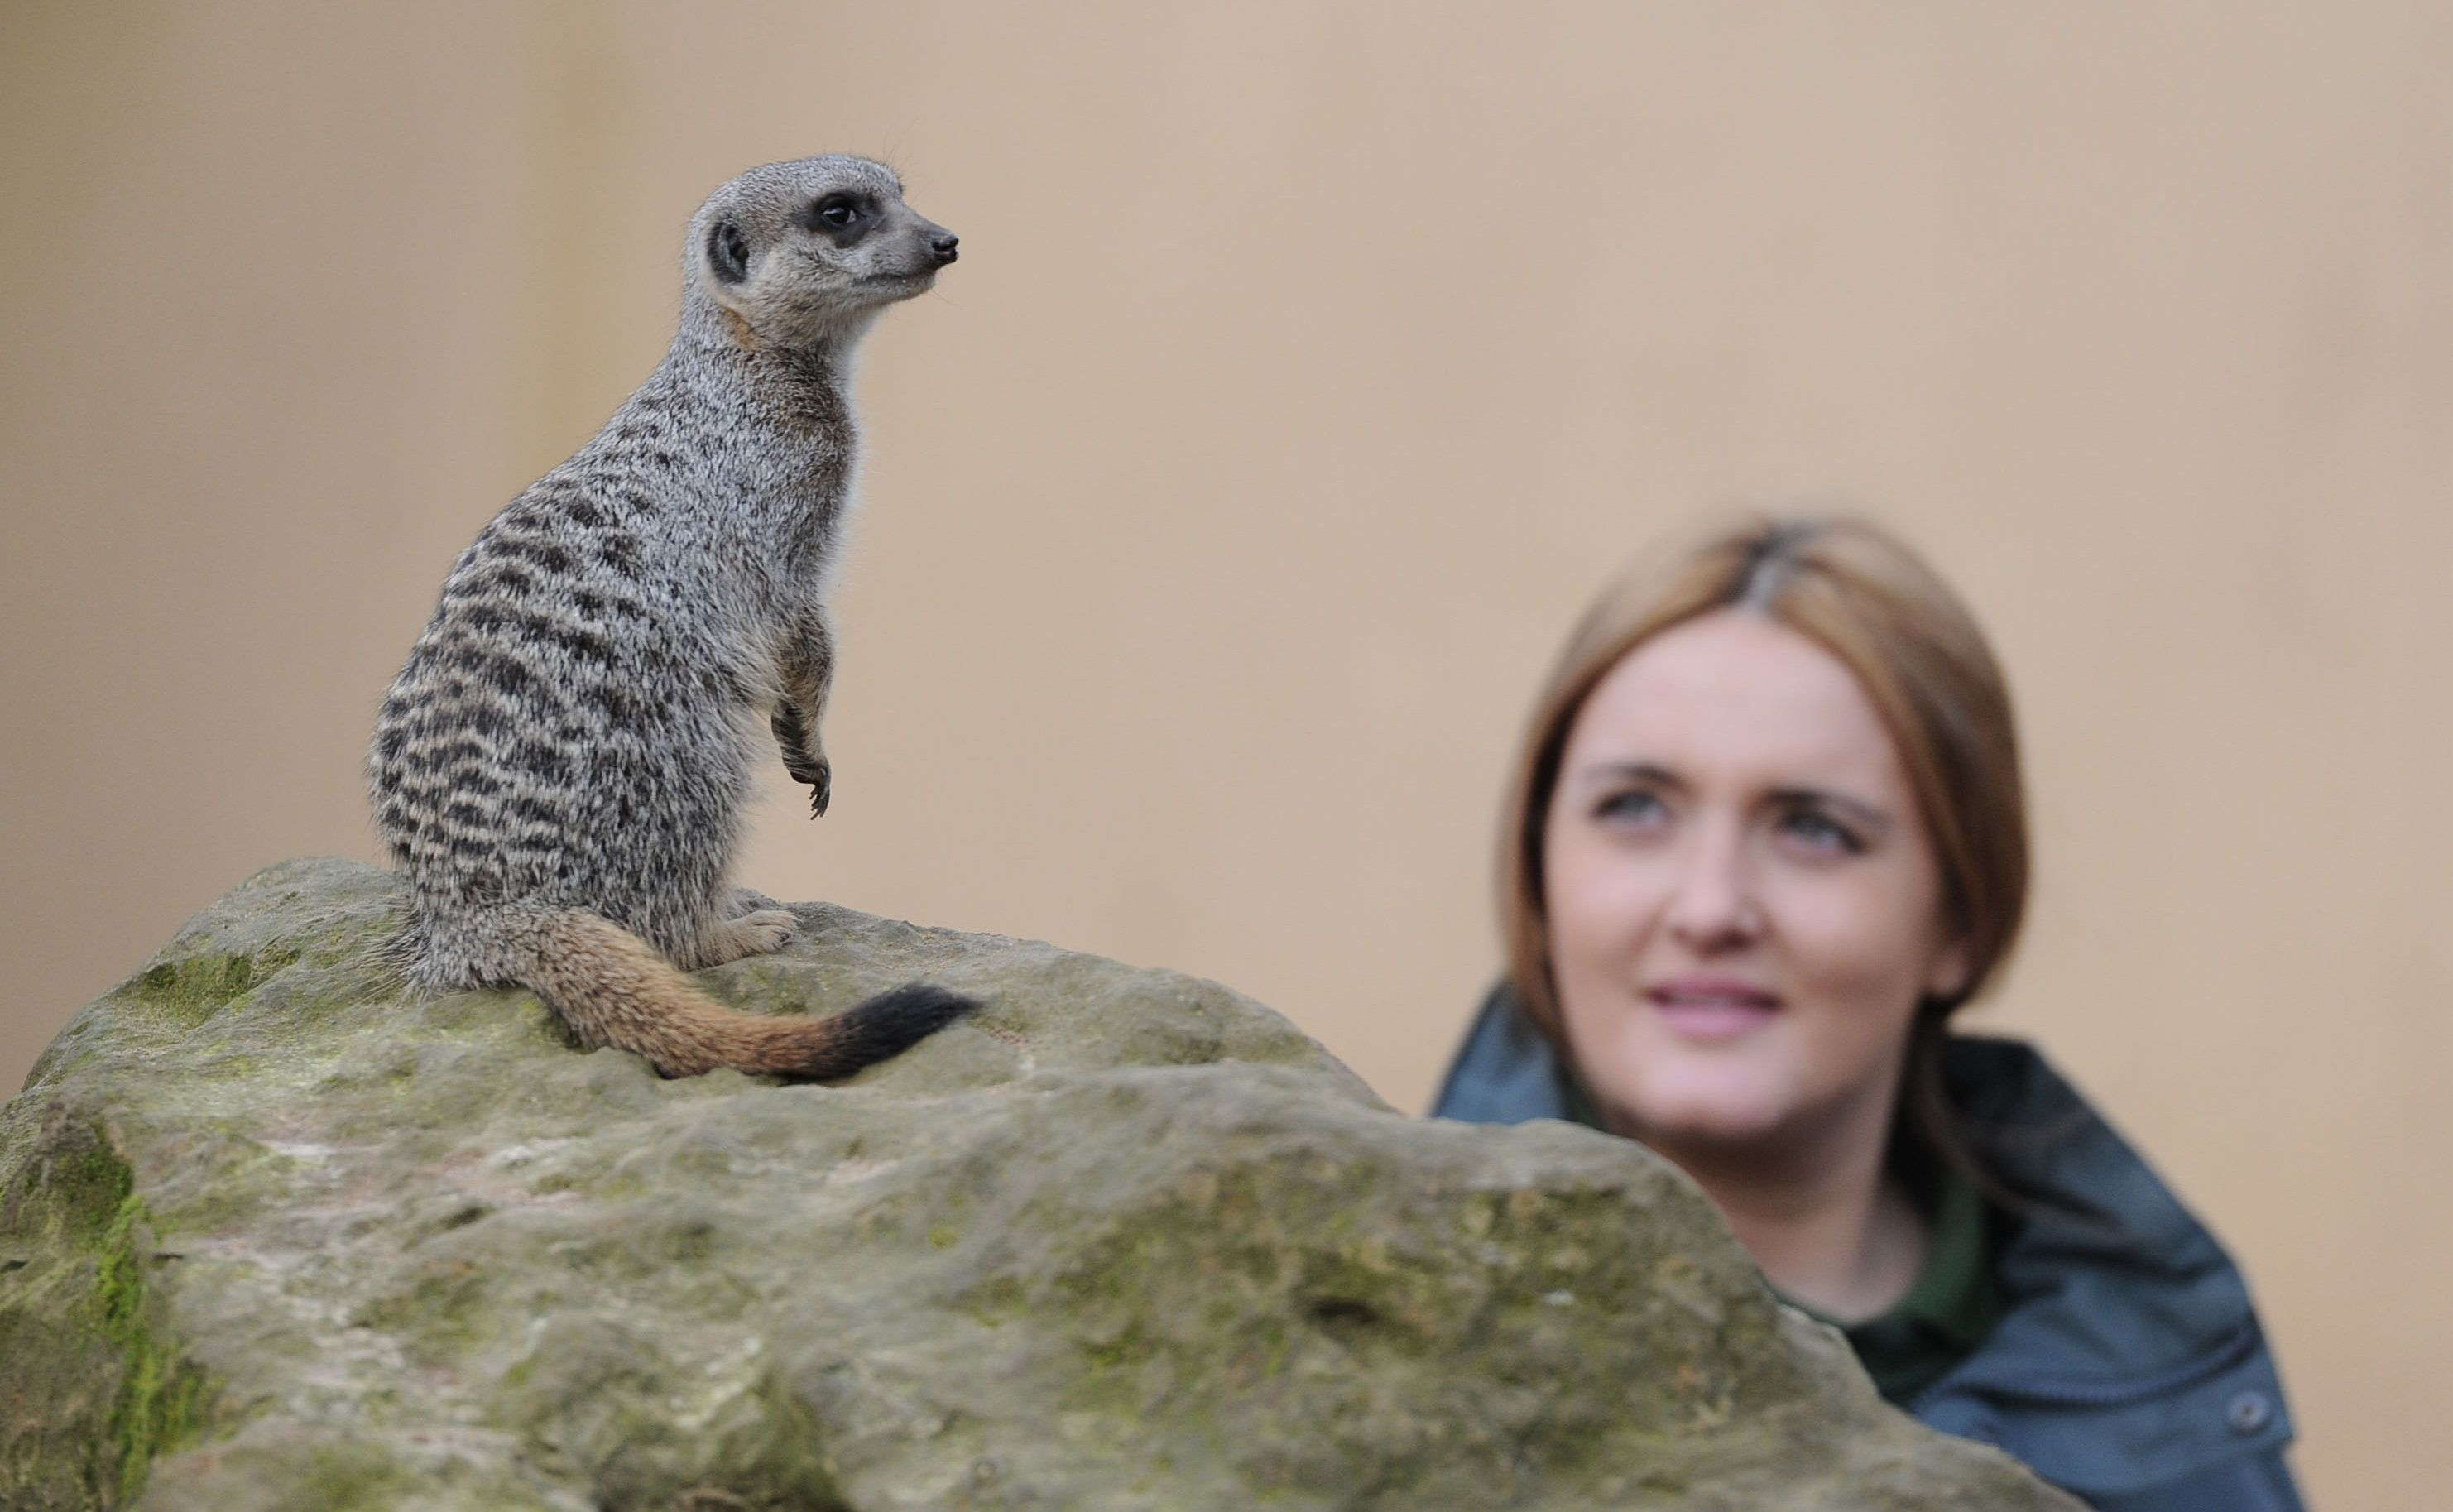 Zoo keeper Caroline Westlake poses for photographers with a meerkat during the annual stocktake at London Zoo in north London on January 4, 2012. ZSL London Zoo embarked on January 4 on their annual complete head count of every animal at the zoo, which houses over 750 different species. AFP PHOTO / CARL COURT (Photo credit should read CARL COURT/AFP/Getty Images)